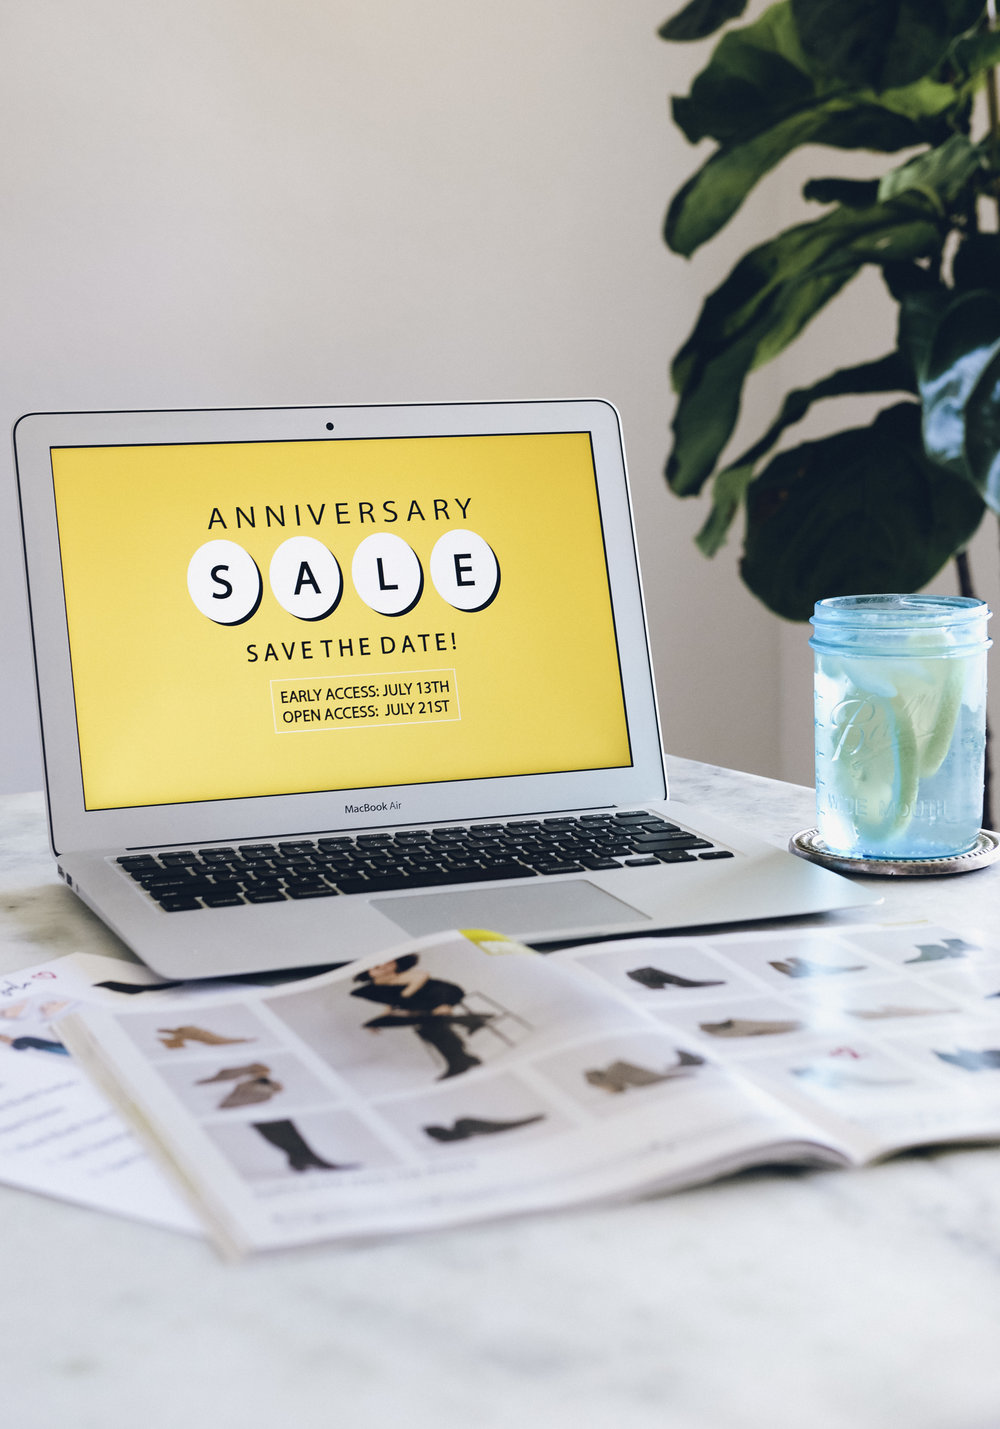 6 TIPS: - TO MAKE THE MOST OUT OF THE NORDSTROM ANNIVERSARY SALE